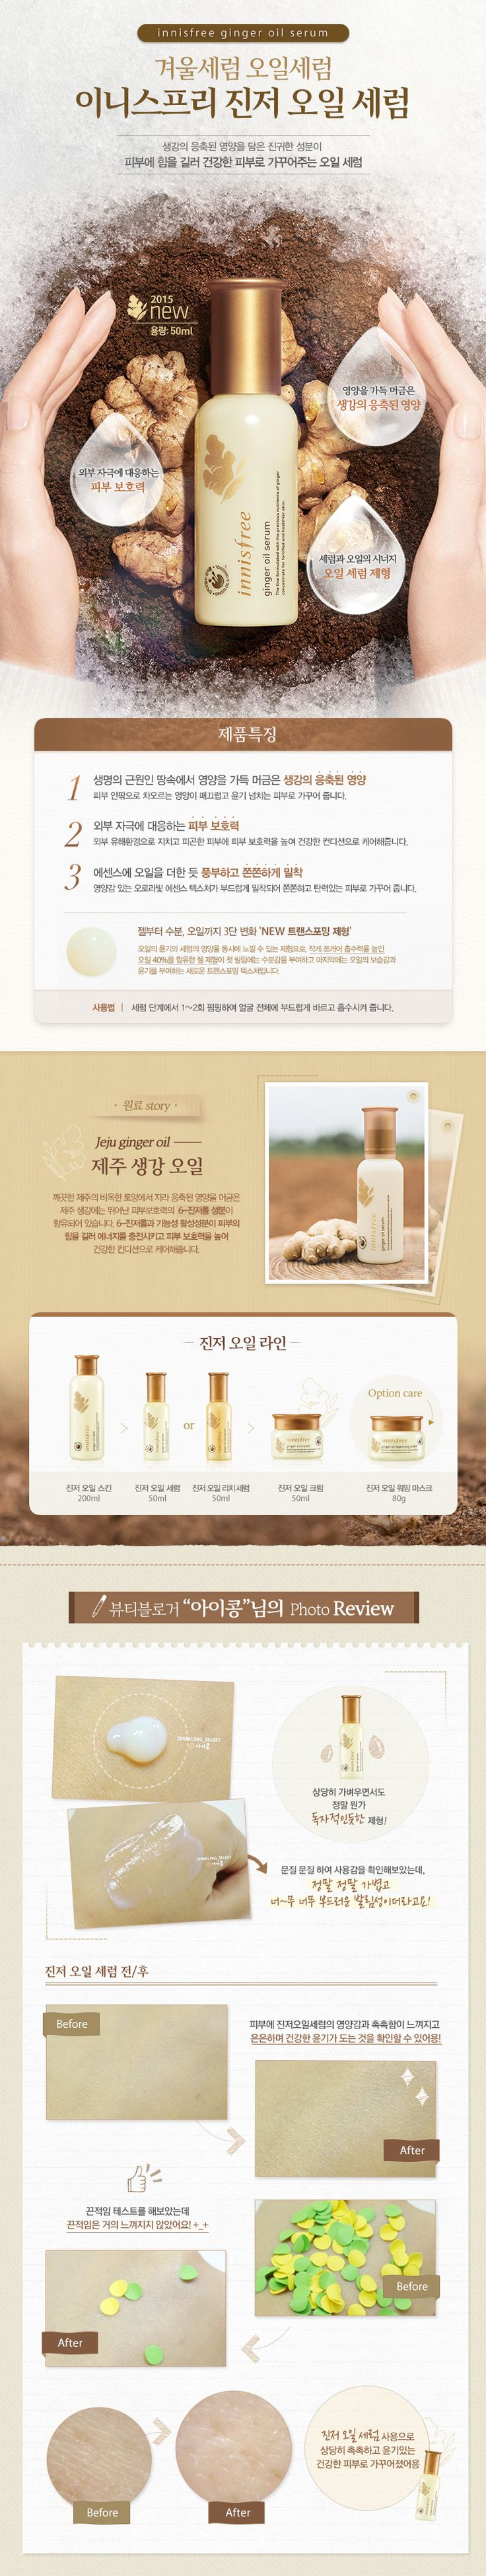 쇼핑하기 > 스킨케어 > 에센스 | Natural benefit from Jeju, innisfree